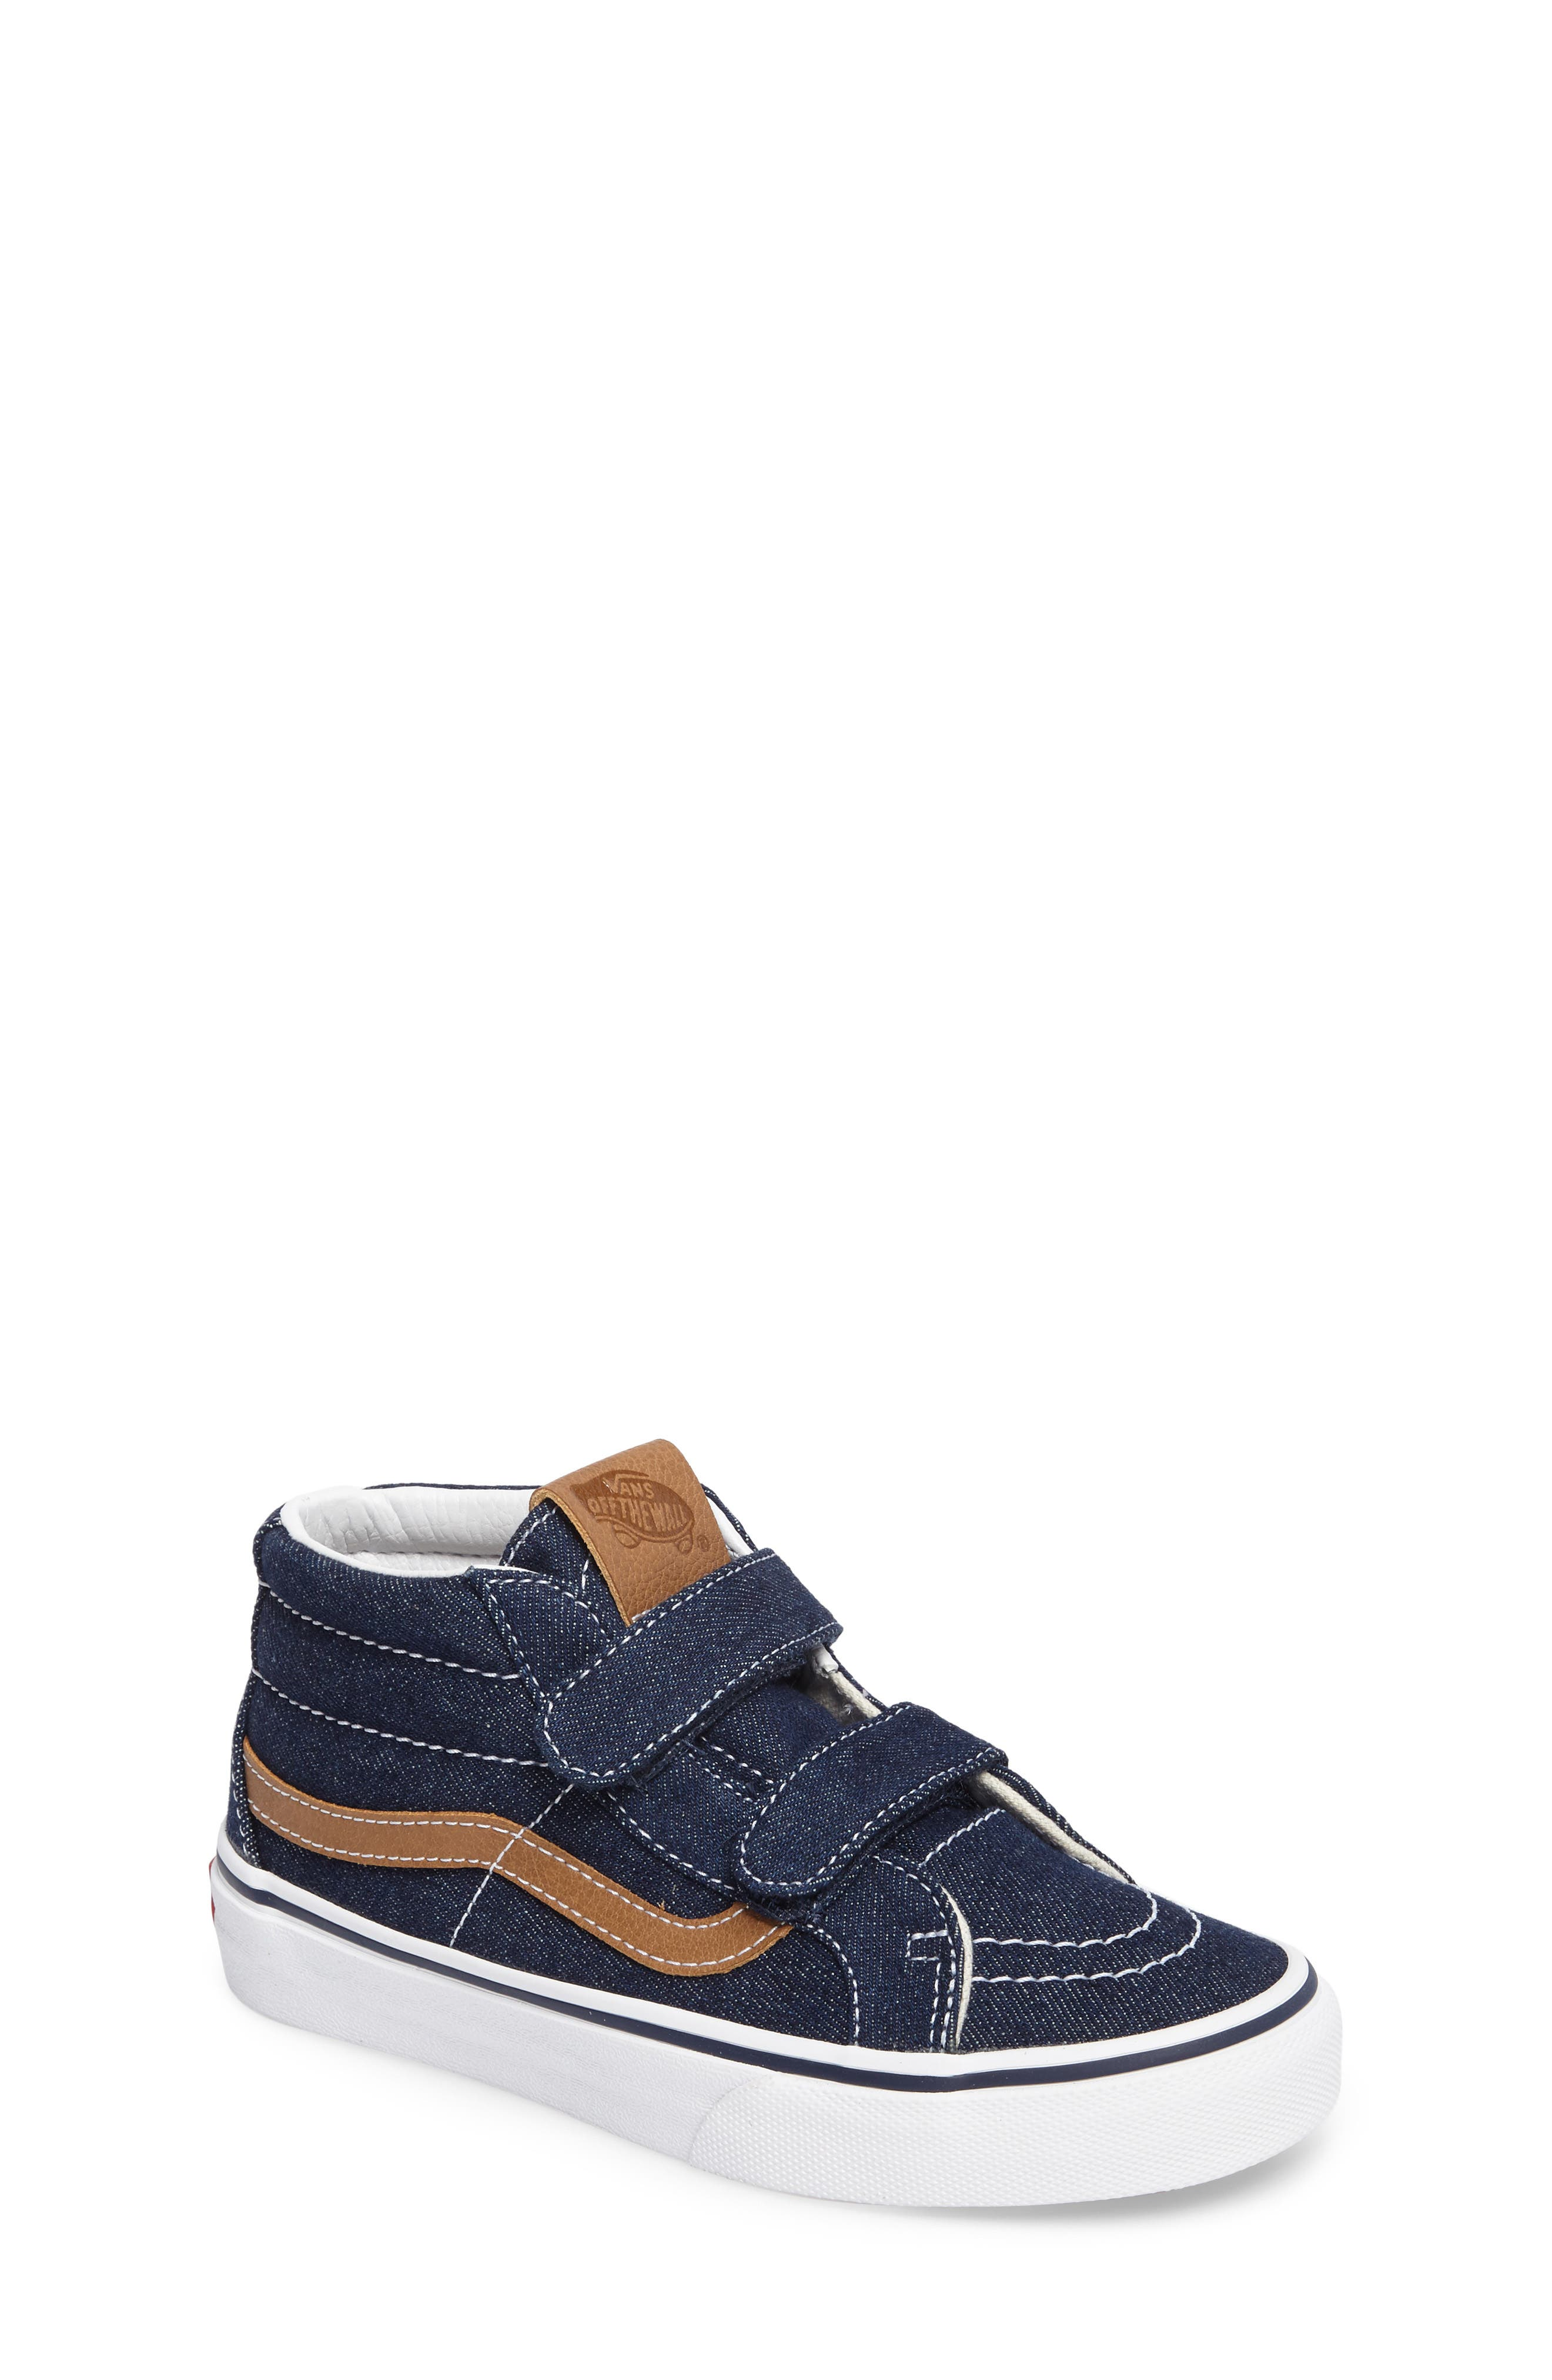 Vans Sk8-Mid Reissue V Sneaker (Baby, Walker, Toddler, Little Kid & Big Kid)